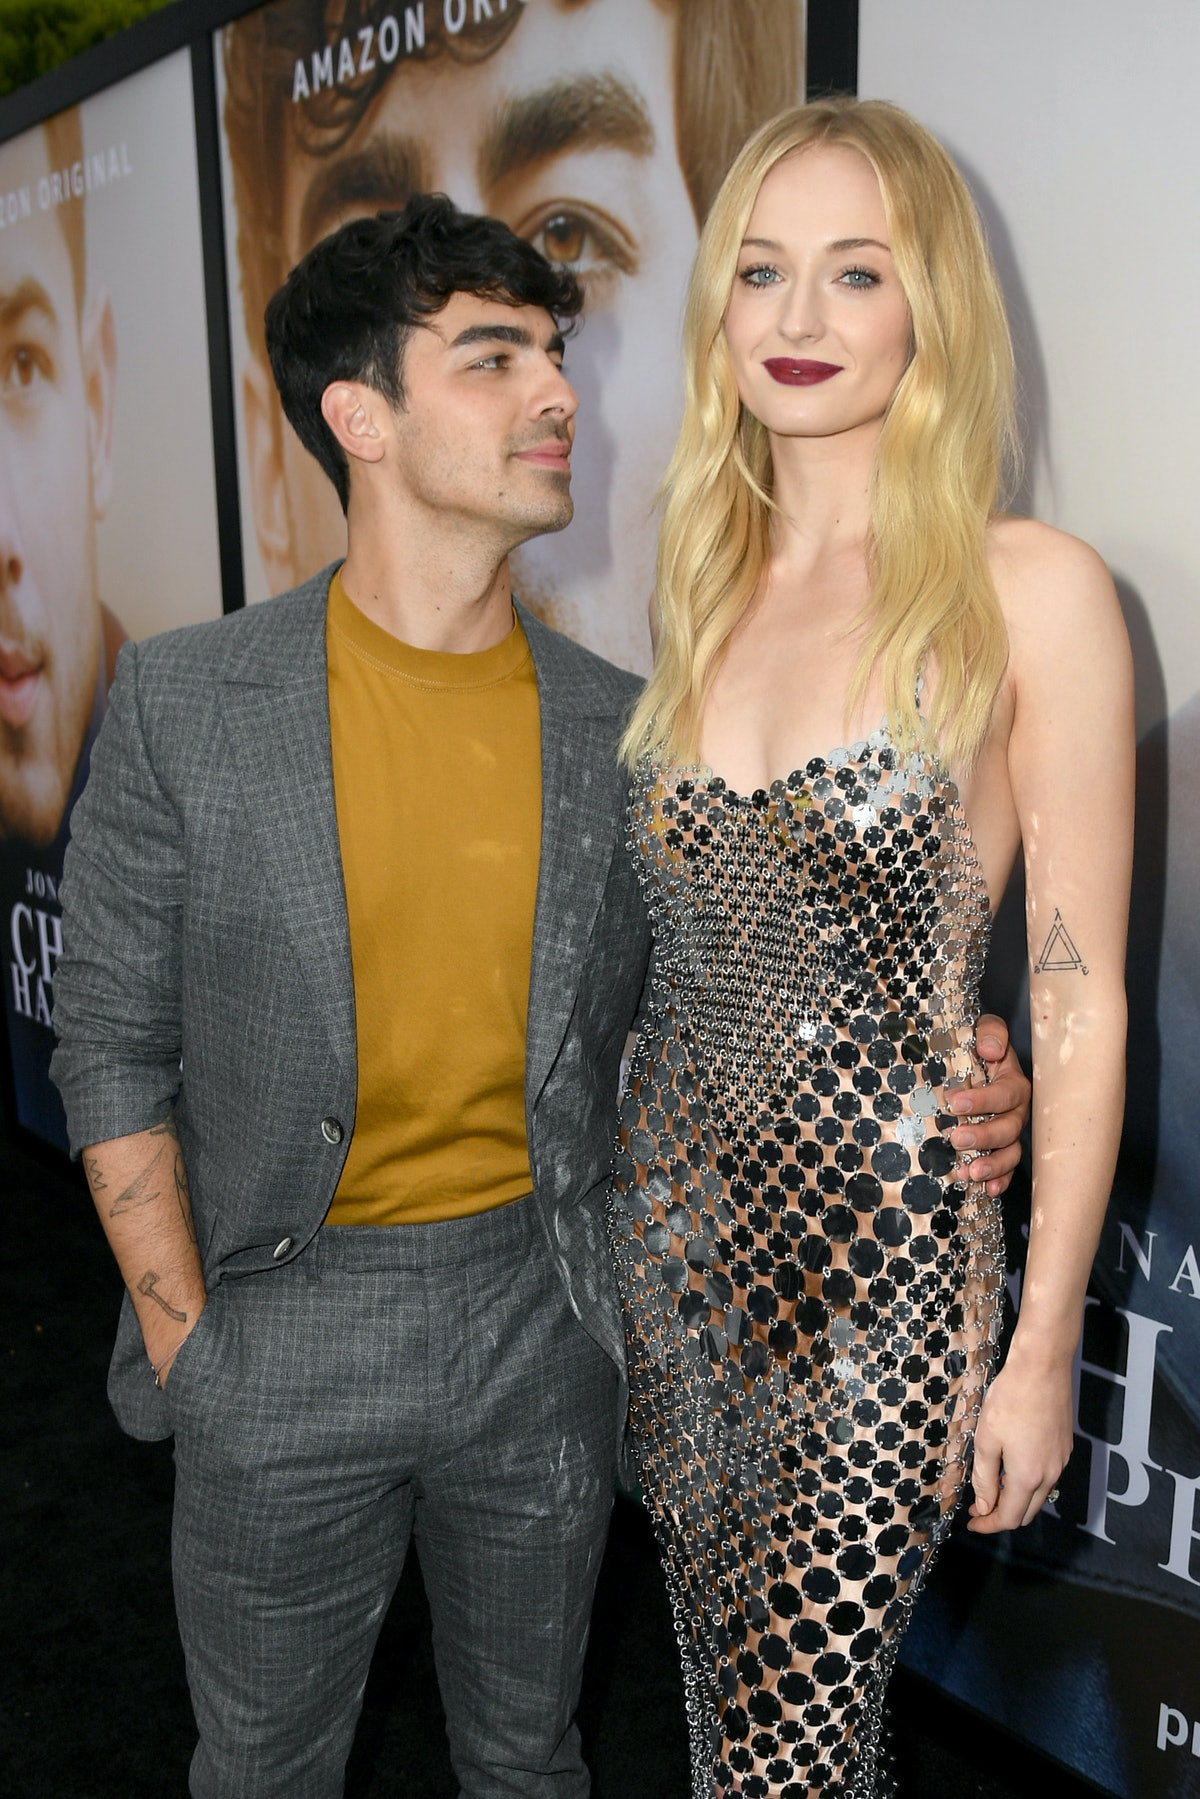 The couple is Chasing Happiness in this Sophie Turner and Joe Jonas Couples Halloween Costume Idea